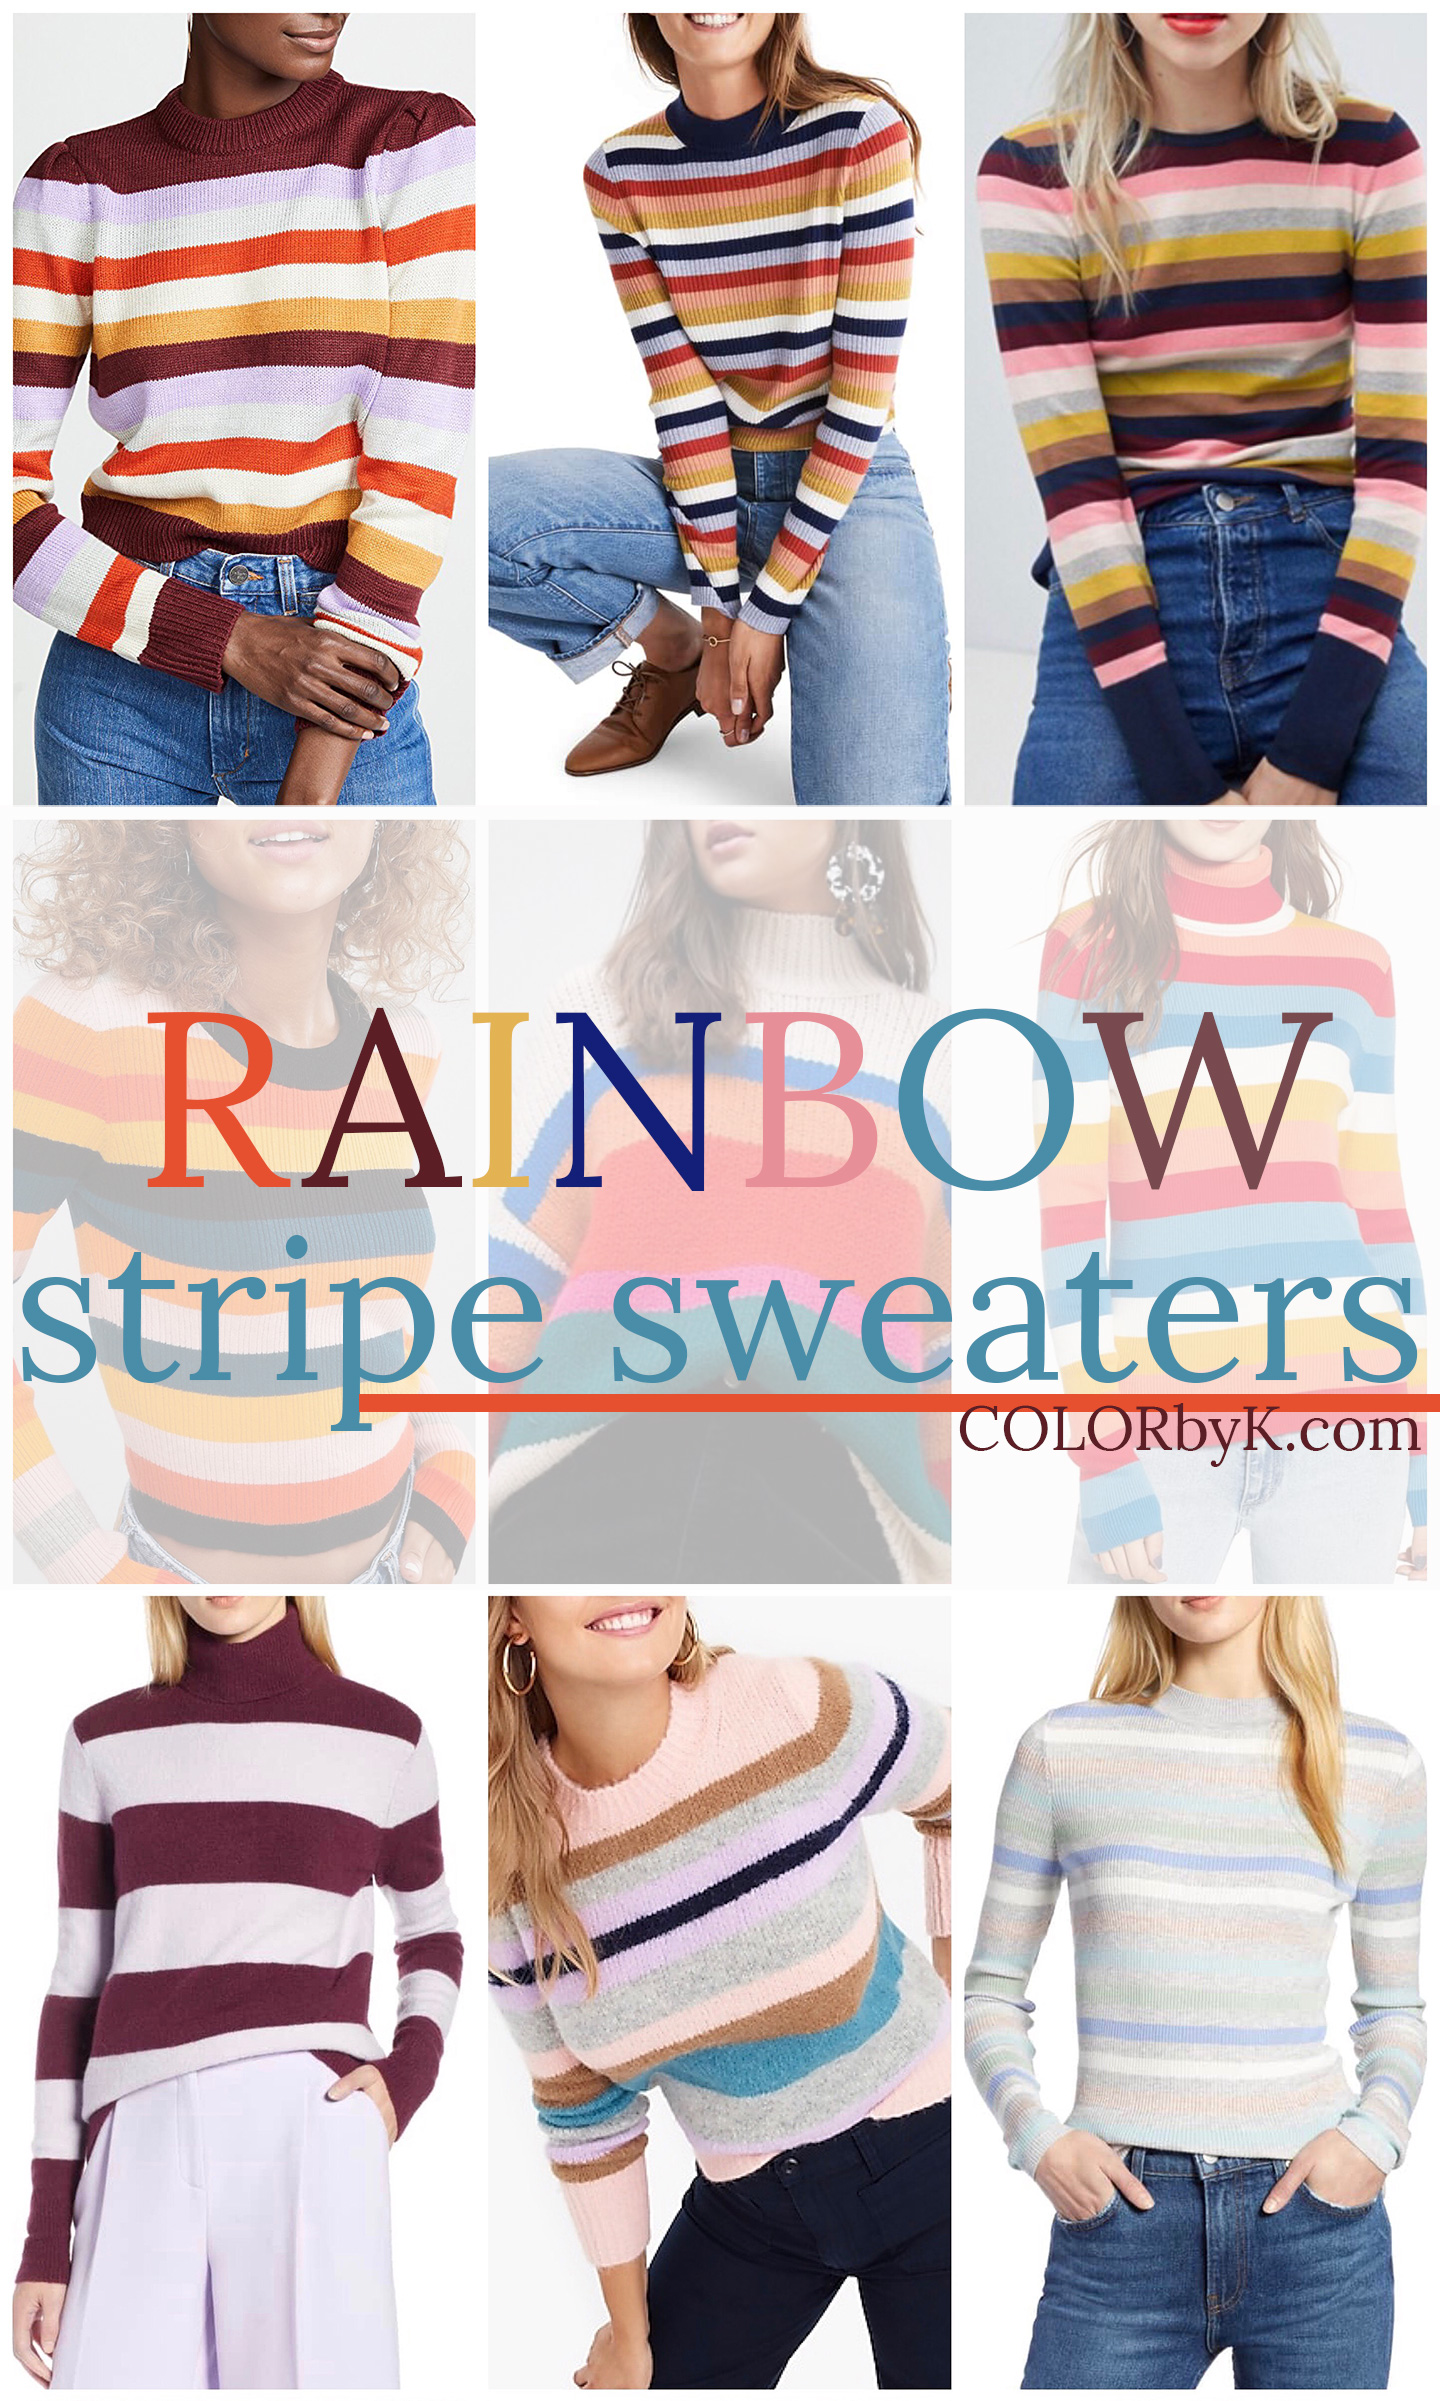 Rainbow Stripe Sweaters for Fall | COLOR by K